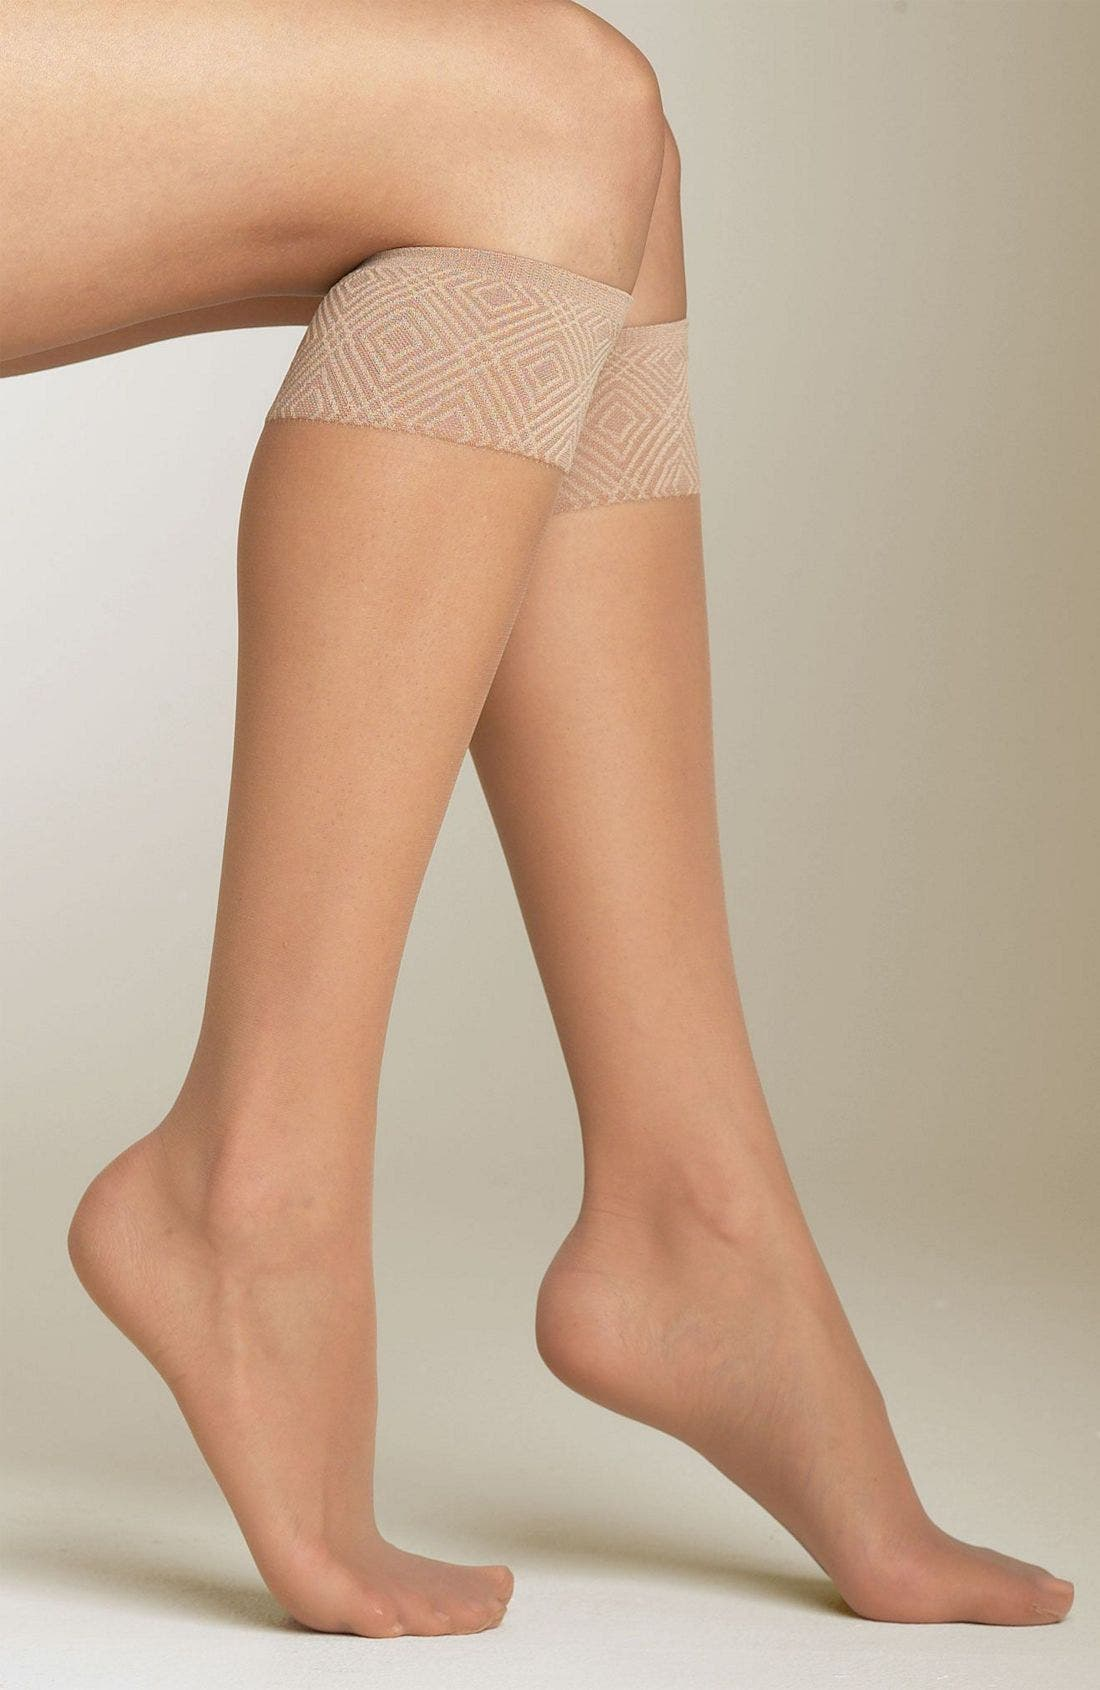 Alternate Image 1 Selected - SPANX® Sheer Knee Highs (2 Pack)